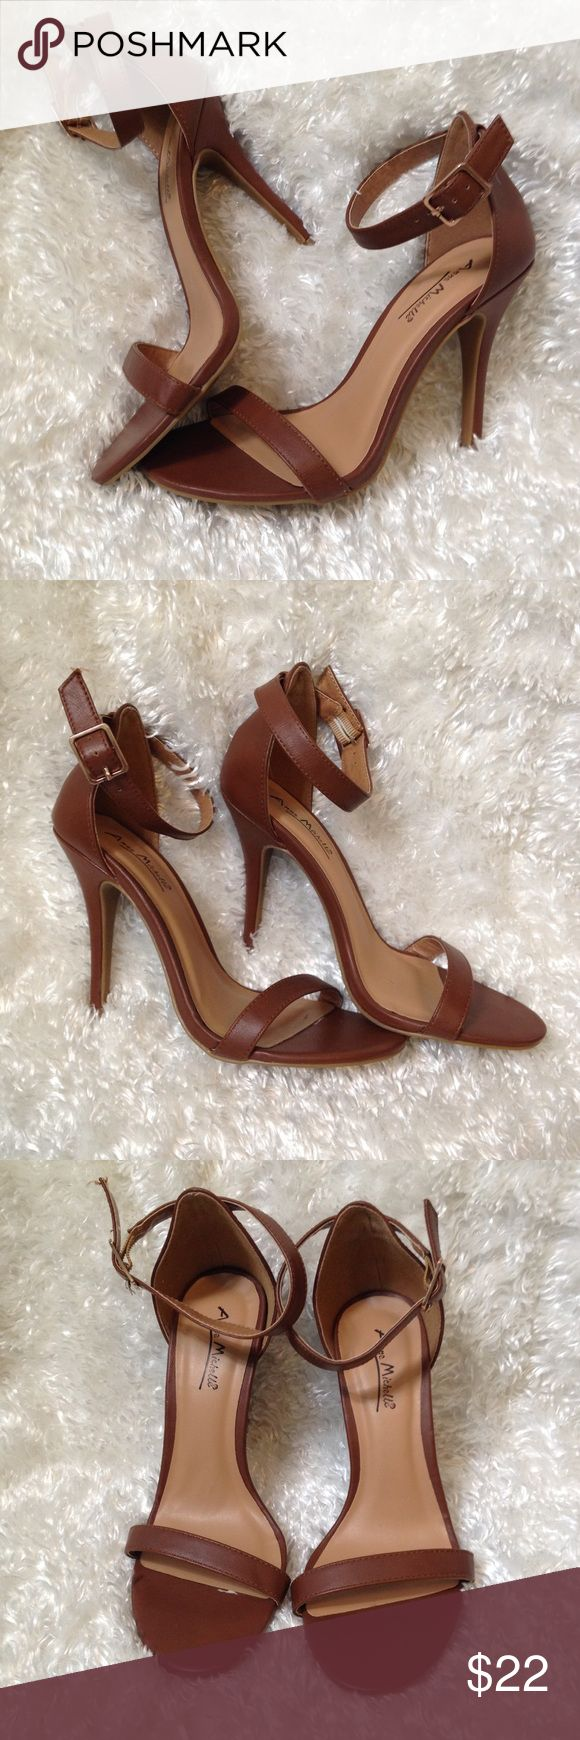 """Brown Strappy Sandals Heels Brown sandals with ankle straps, 4.5"""" heels, very little wear. One scuff on back of a heel and one scratch in toe area as shown. Anne Michelle Shoes Heels"""